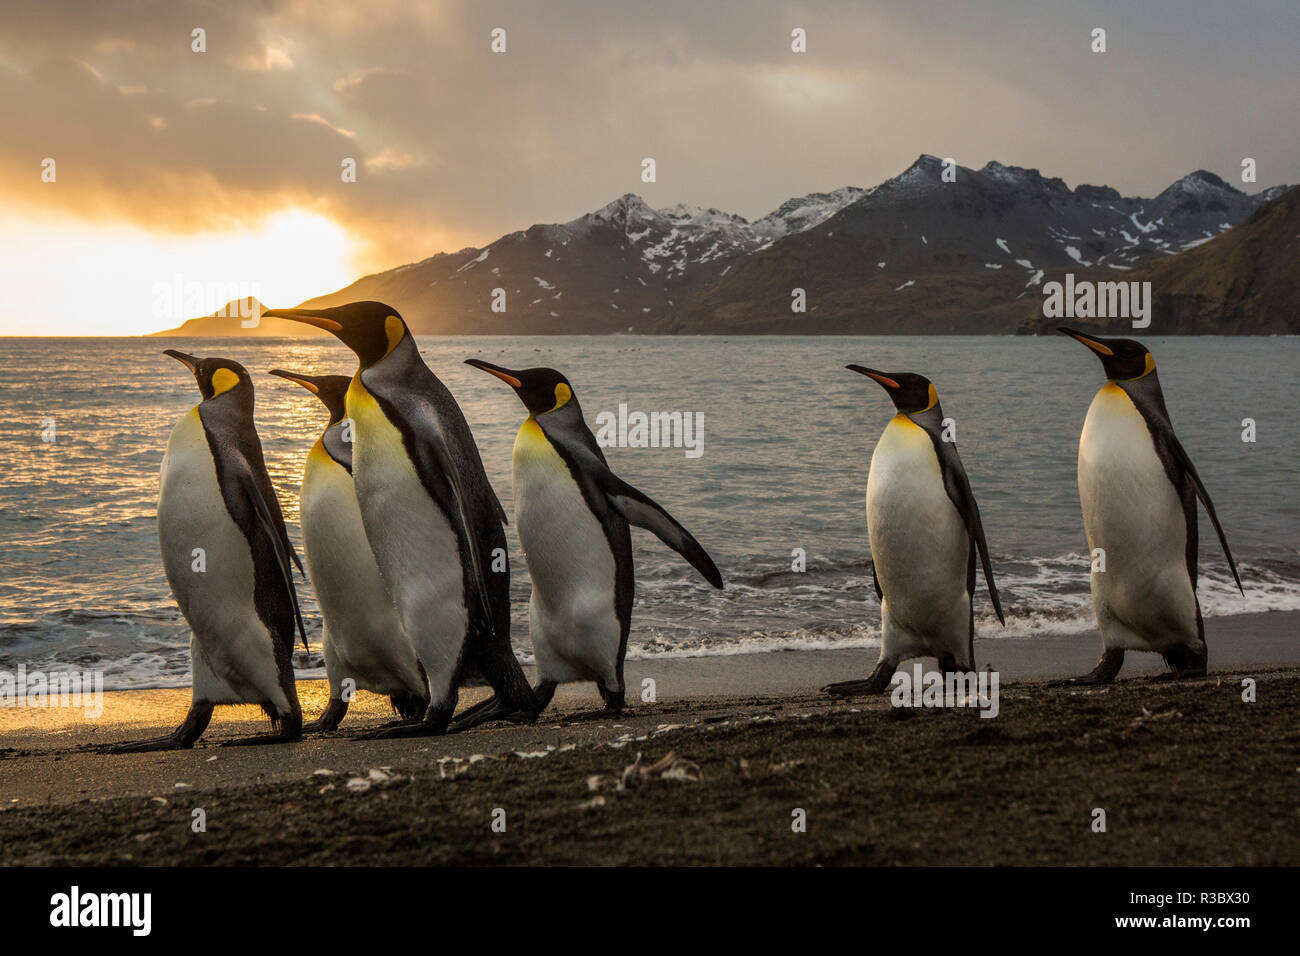 Sunrise with marching king penguins on the beach of St. Andrews Bay, South Georgia Islands. - Stock Image